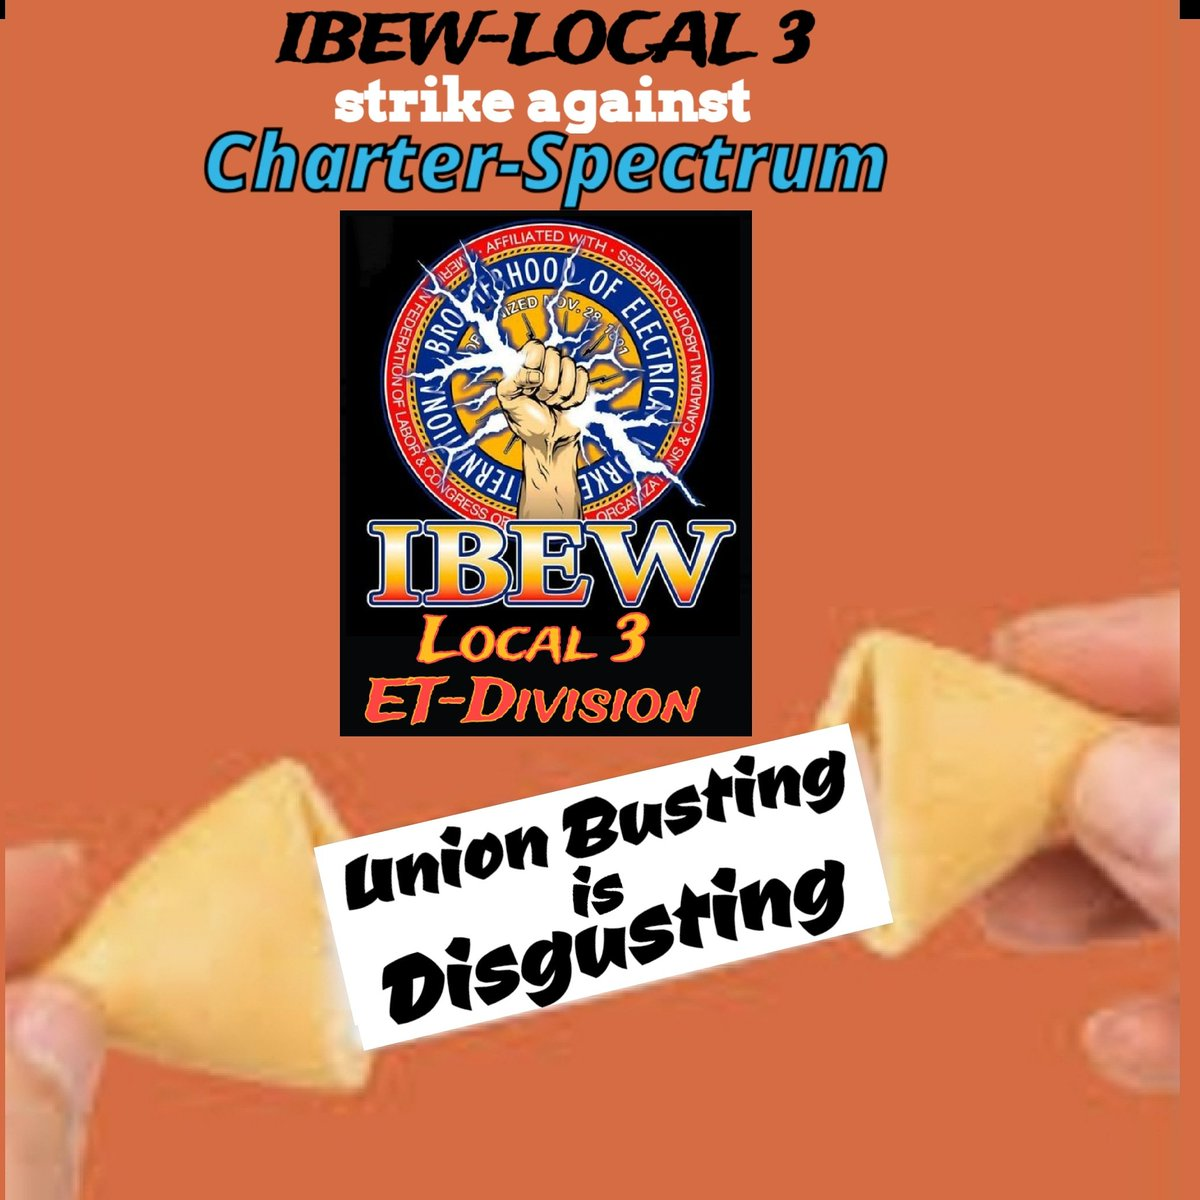 Day 991 Brothas & Sisthas a fortune cookie shouldn't be needed to highlight the truth. But the truth isn't being told about Charter/Spectrum. They're allowed to Lie & do business in NYC. All at the same time. #SpectrumStrike #Local3 #FairContractNow #corporategreed<br>http://pic.twitter.com/OBcoPrXrAH